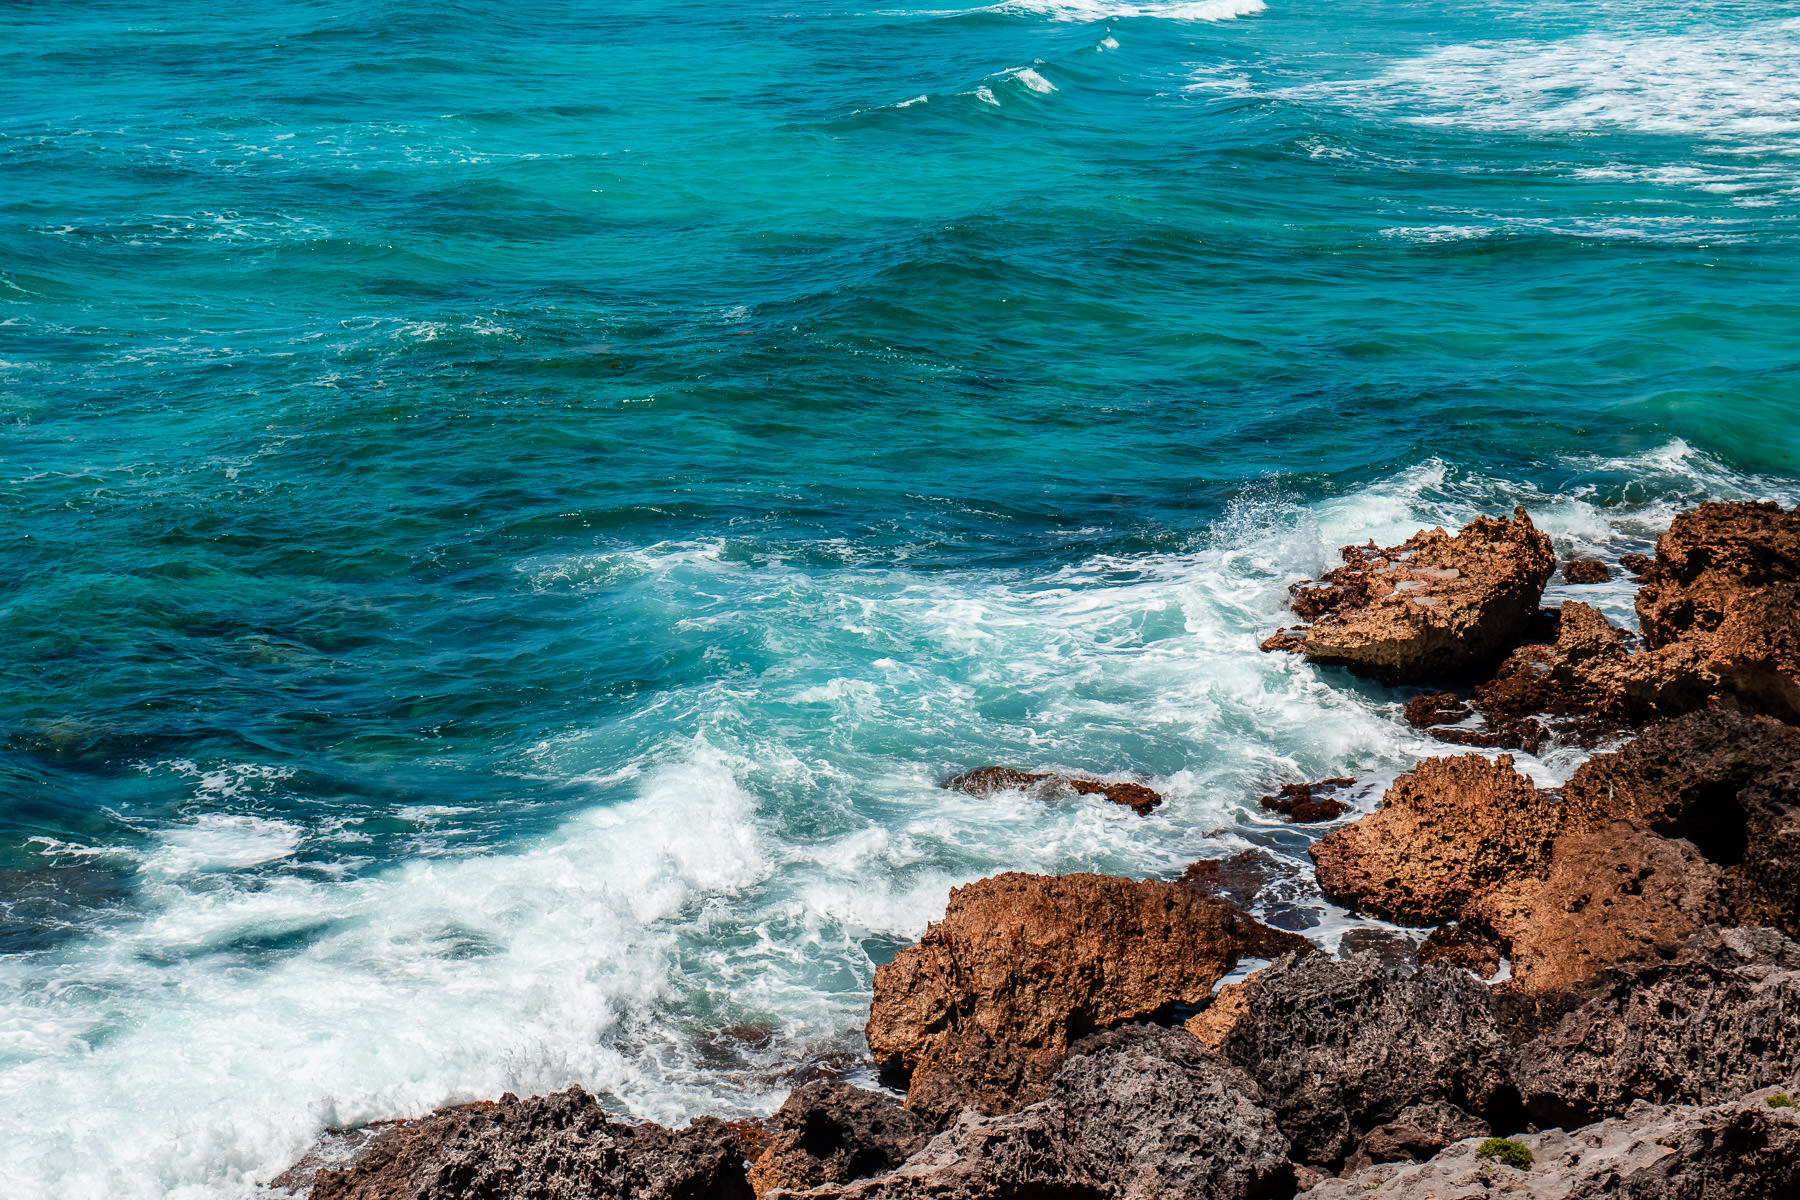 Waves froth against rough rocks on the eastern shore of Cozumel, Mexico.